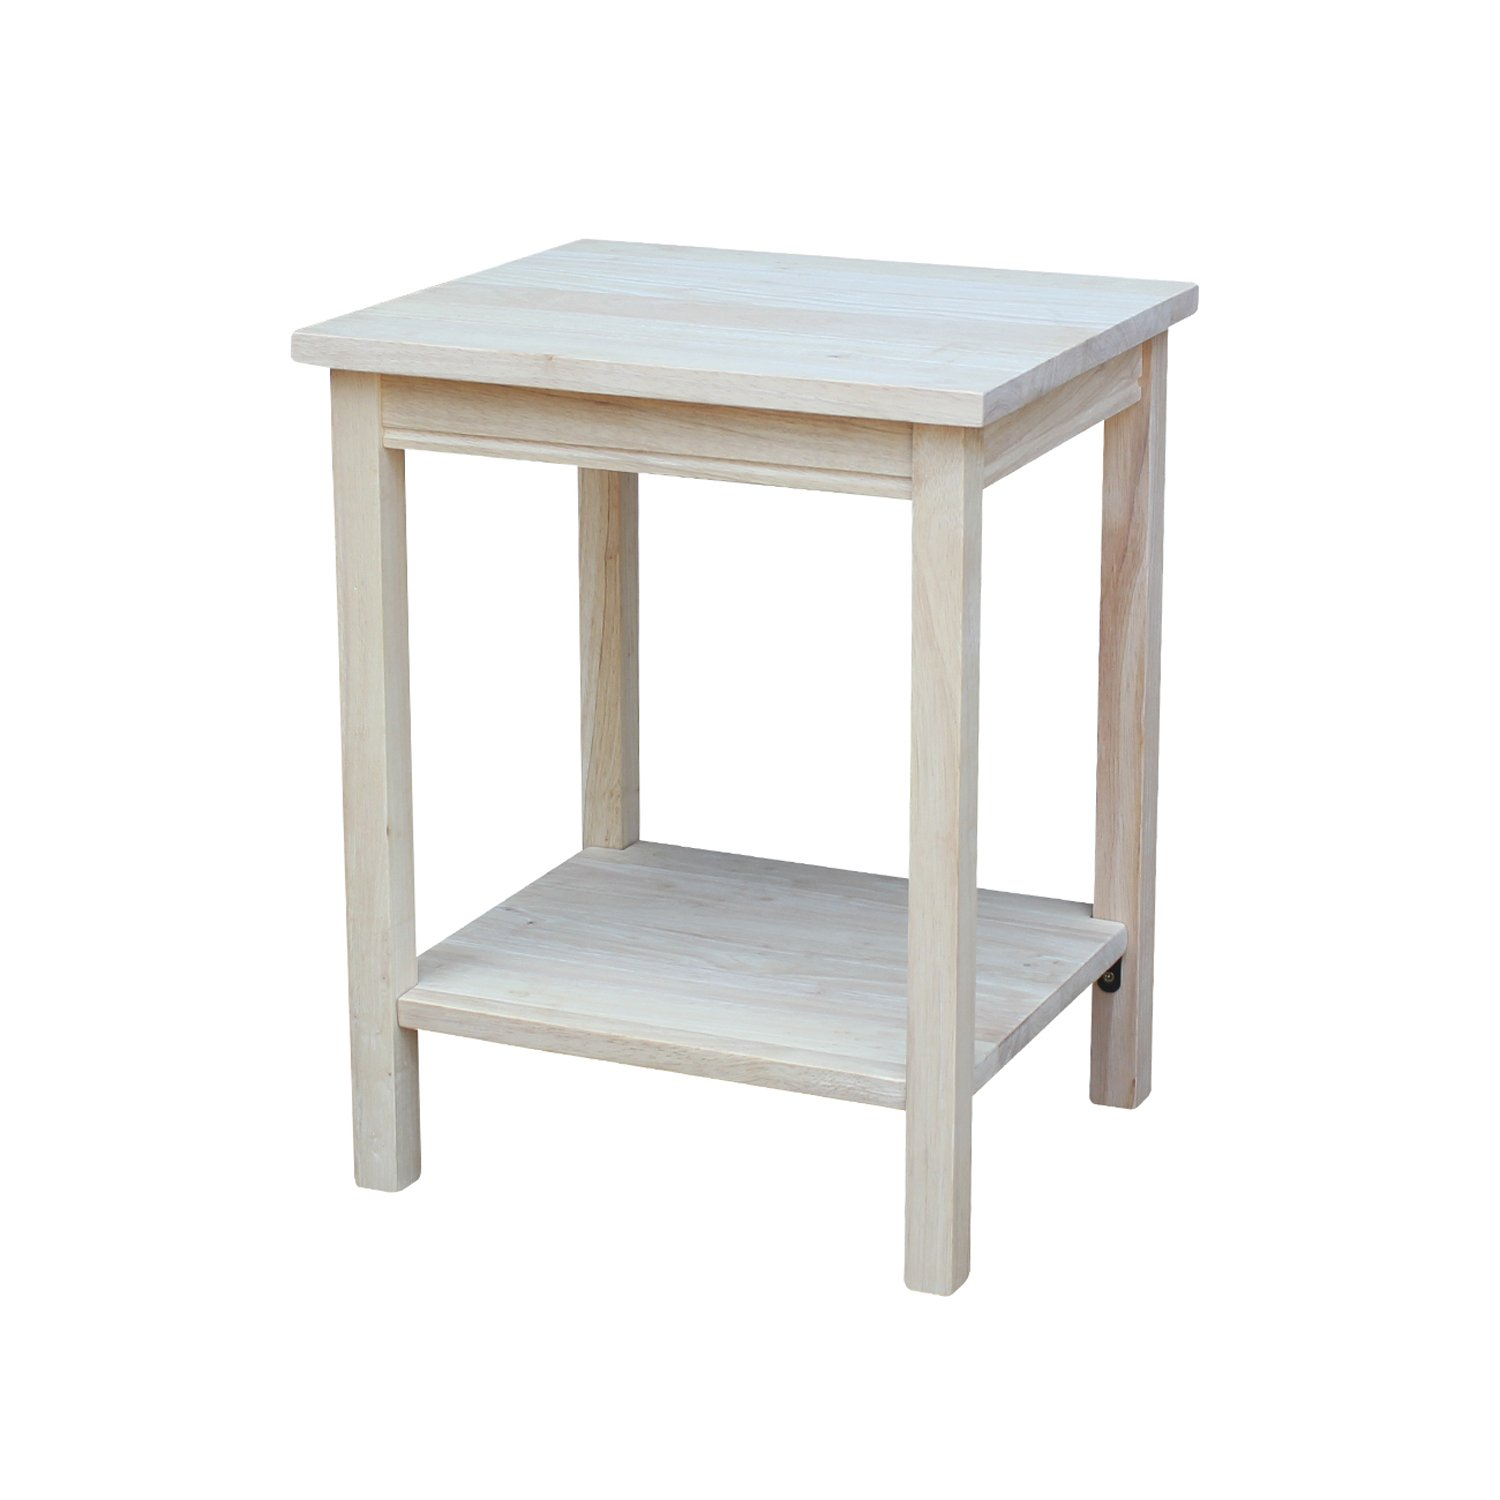 international concepts accent table unfinished furniture end tables kitchen dining wickham oak reviews large square coffee modern white with drawers royal manufacturing homesense